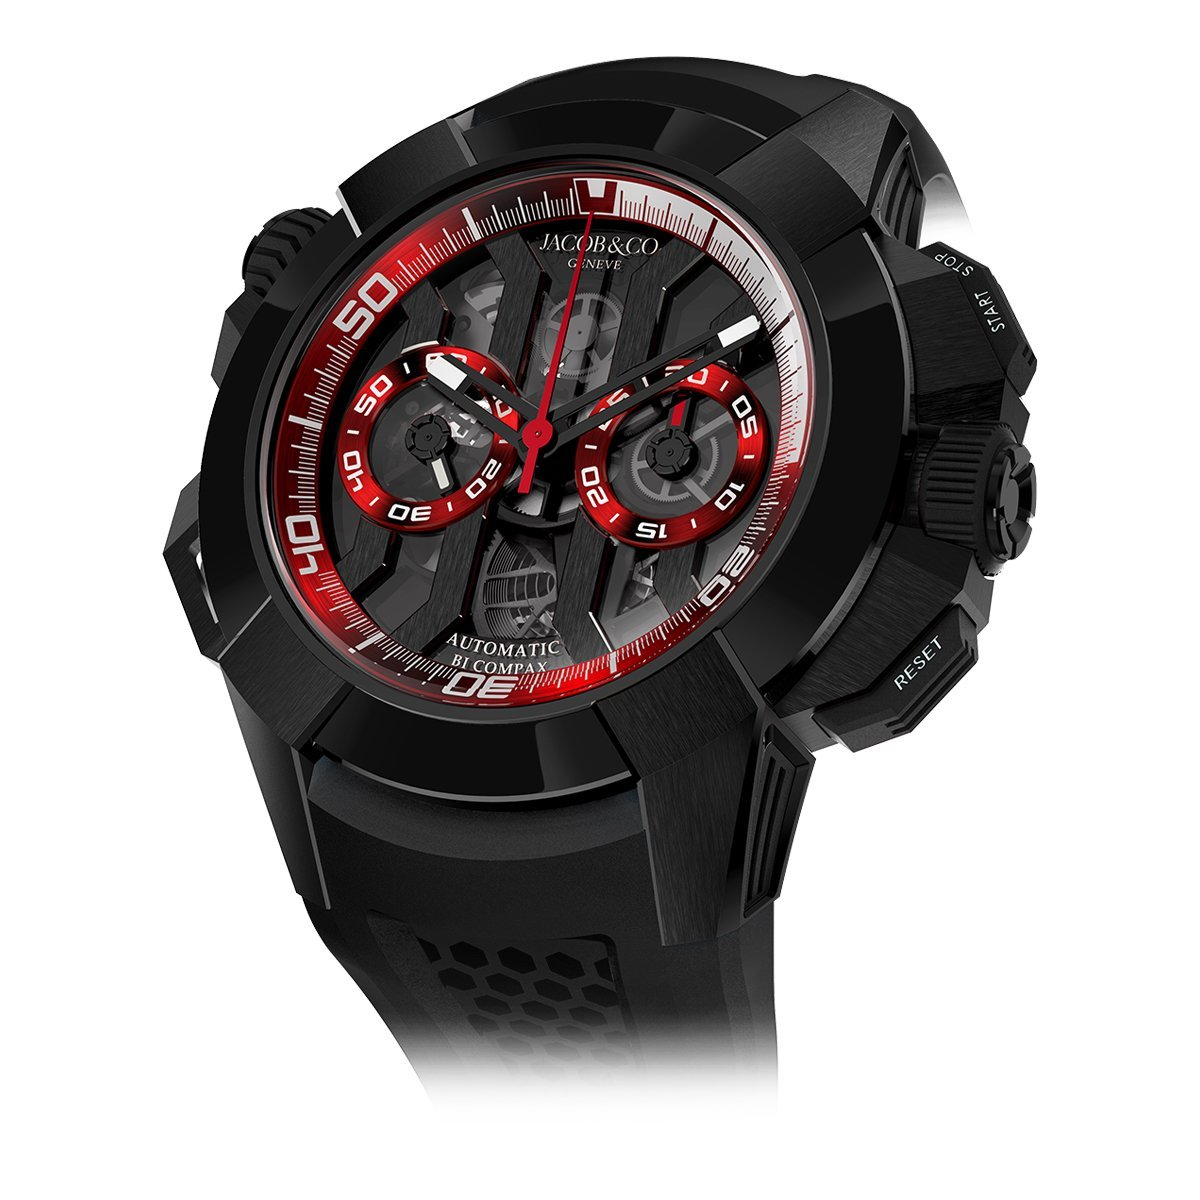 Jacob & Co. Epic X Chronograph Black DLC Black Dial - Watches & Crystals